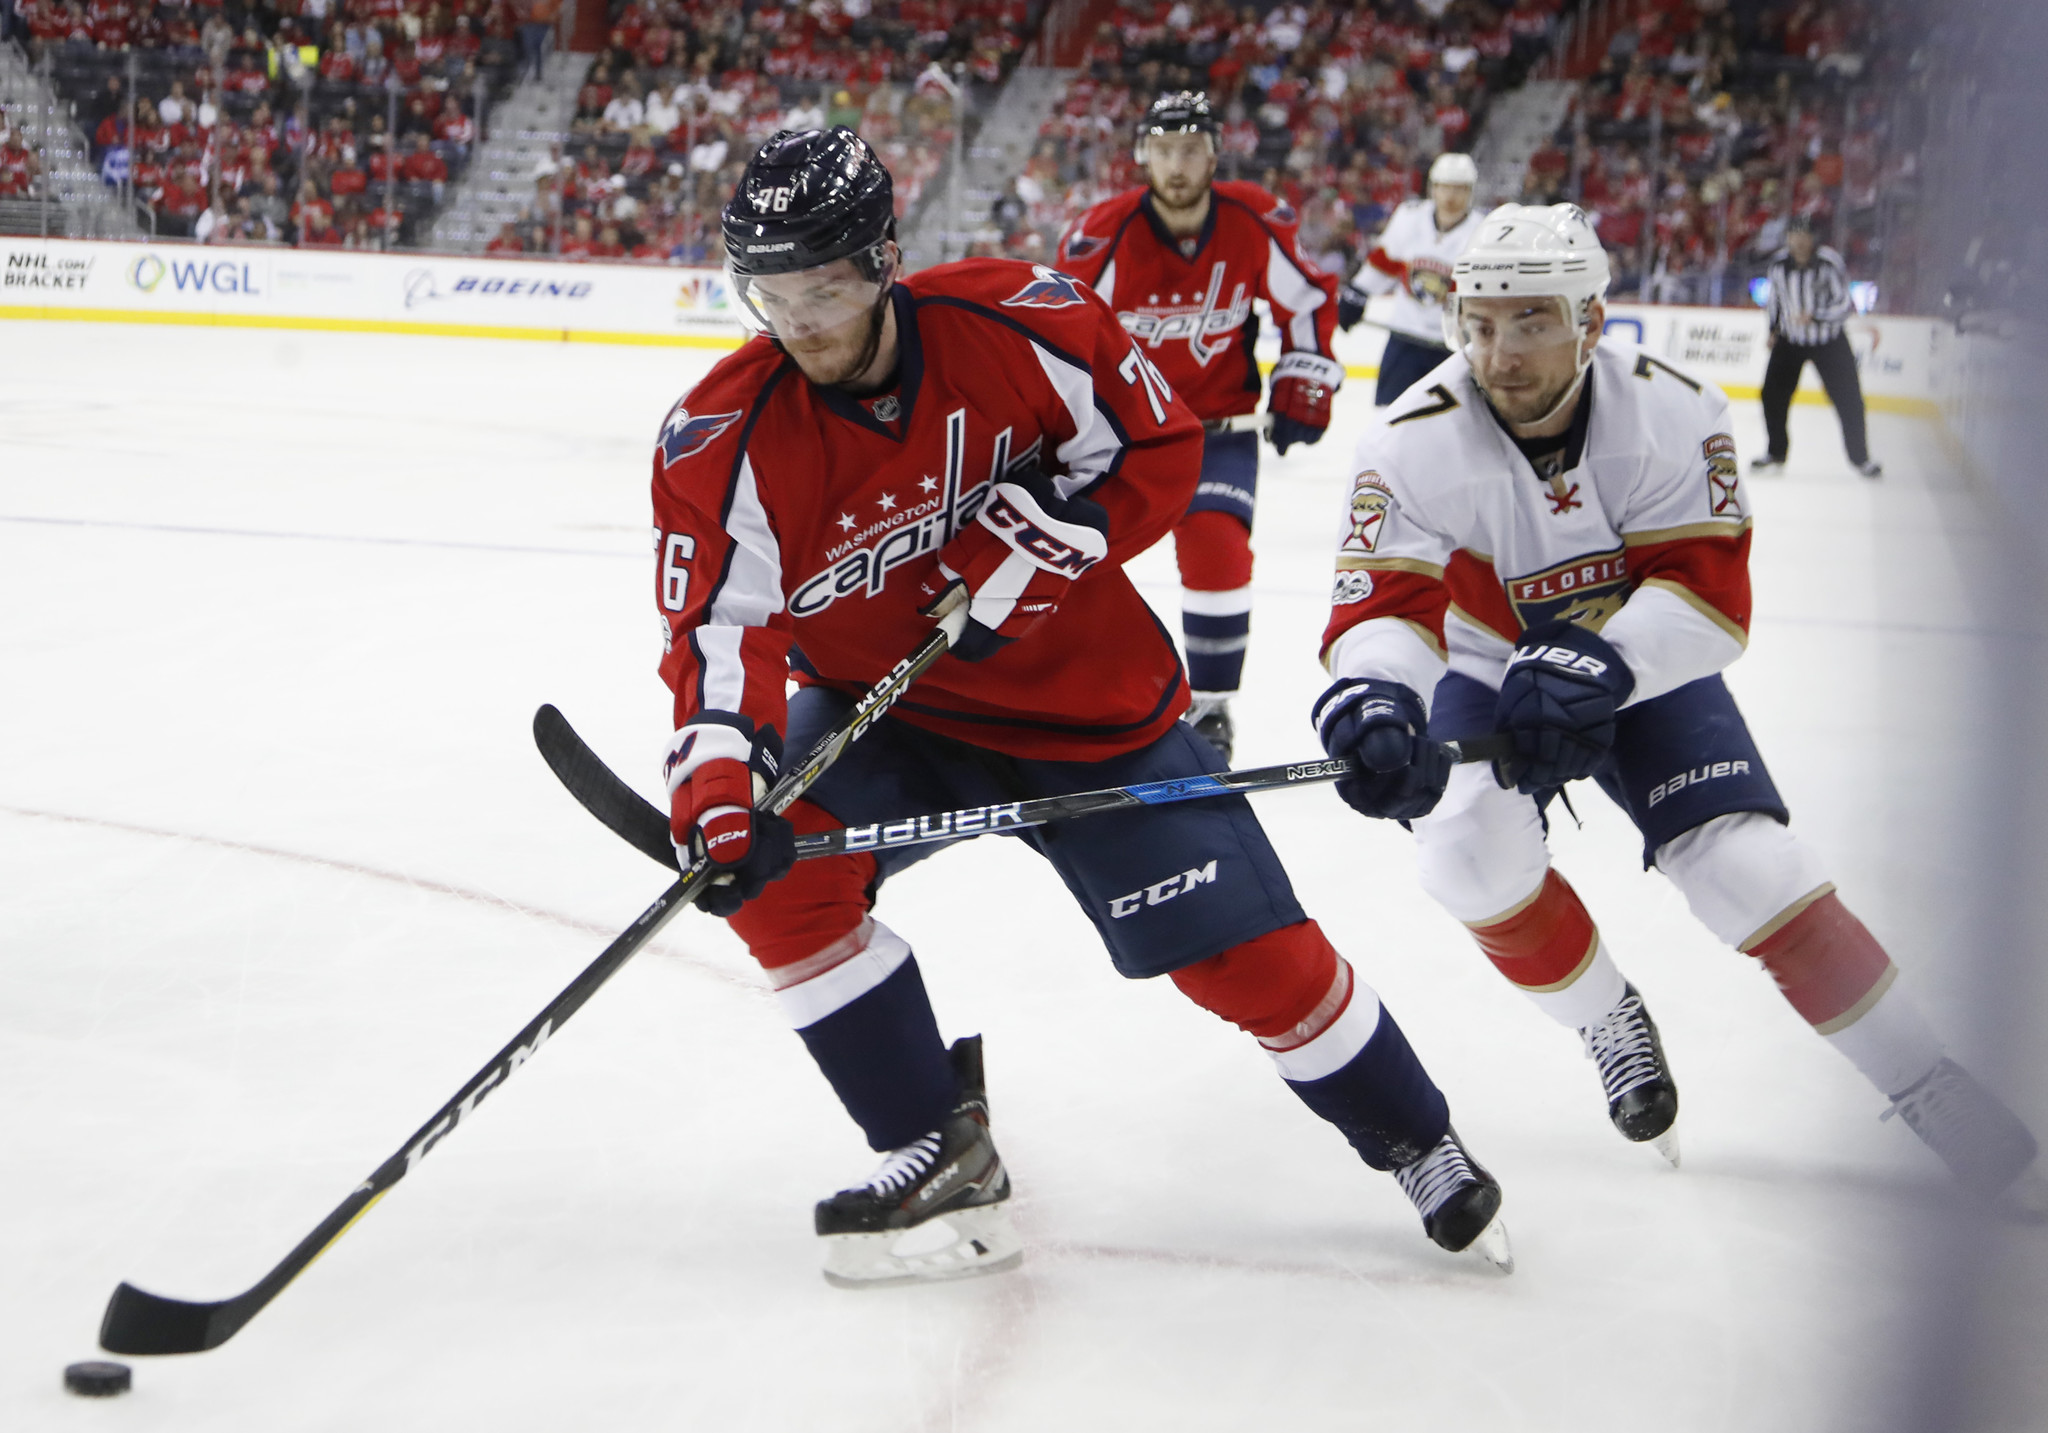 Sfl-photos-panthers-season-finale-at-the-capitals-20170409